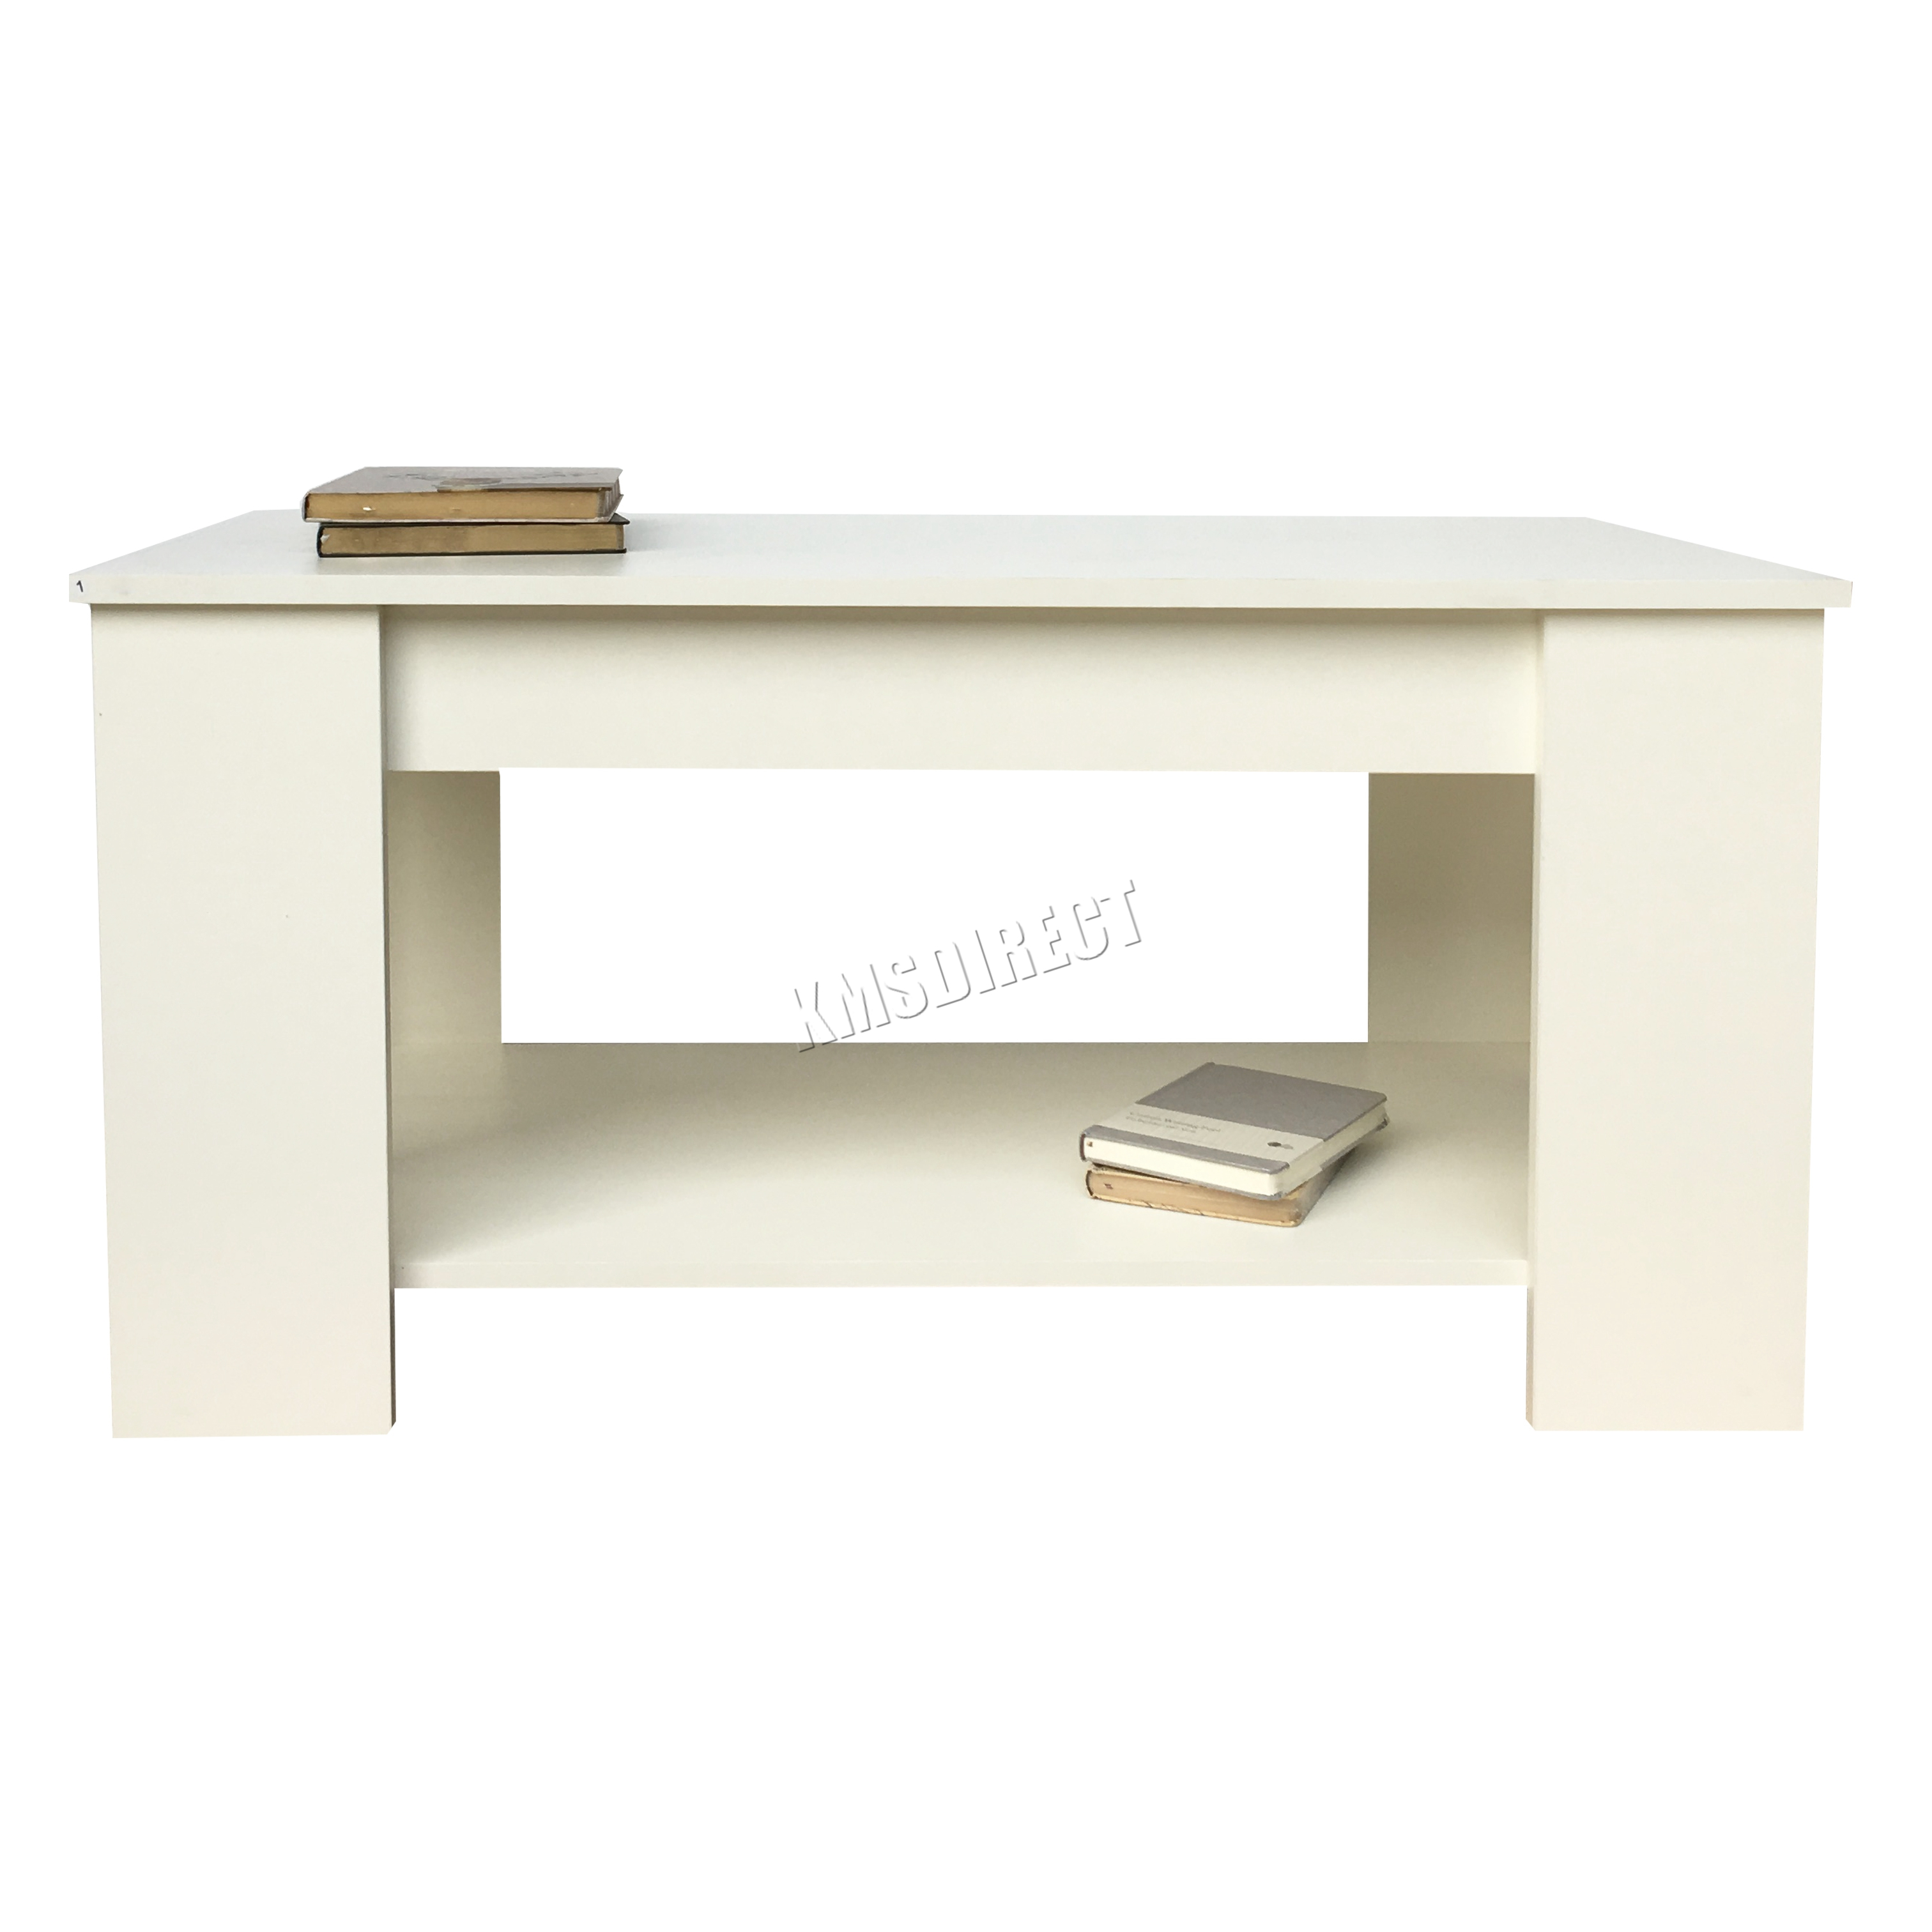 Lift Top Coffee Table Ikea Uk: FoxHunter Lift Up Top Coffee Table MDF With Storage And